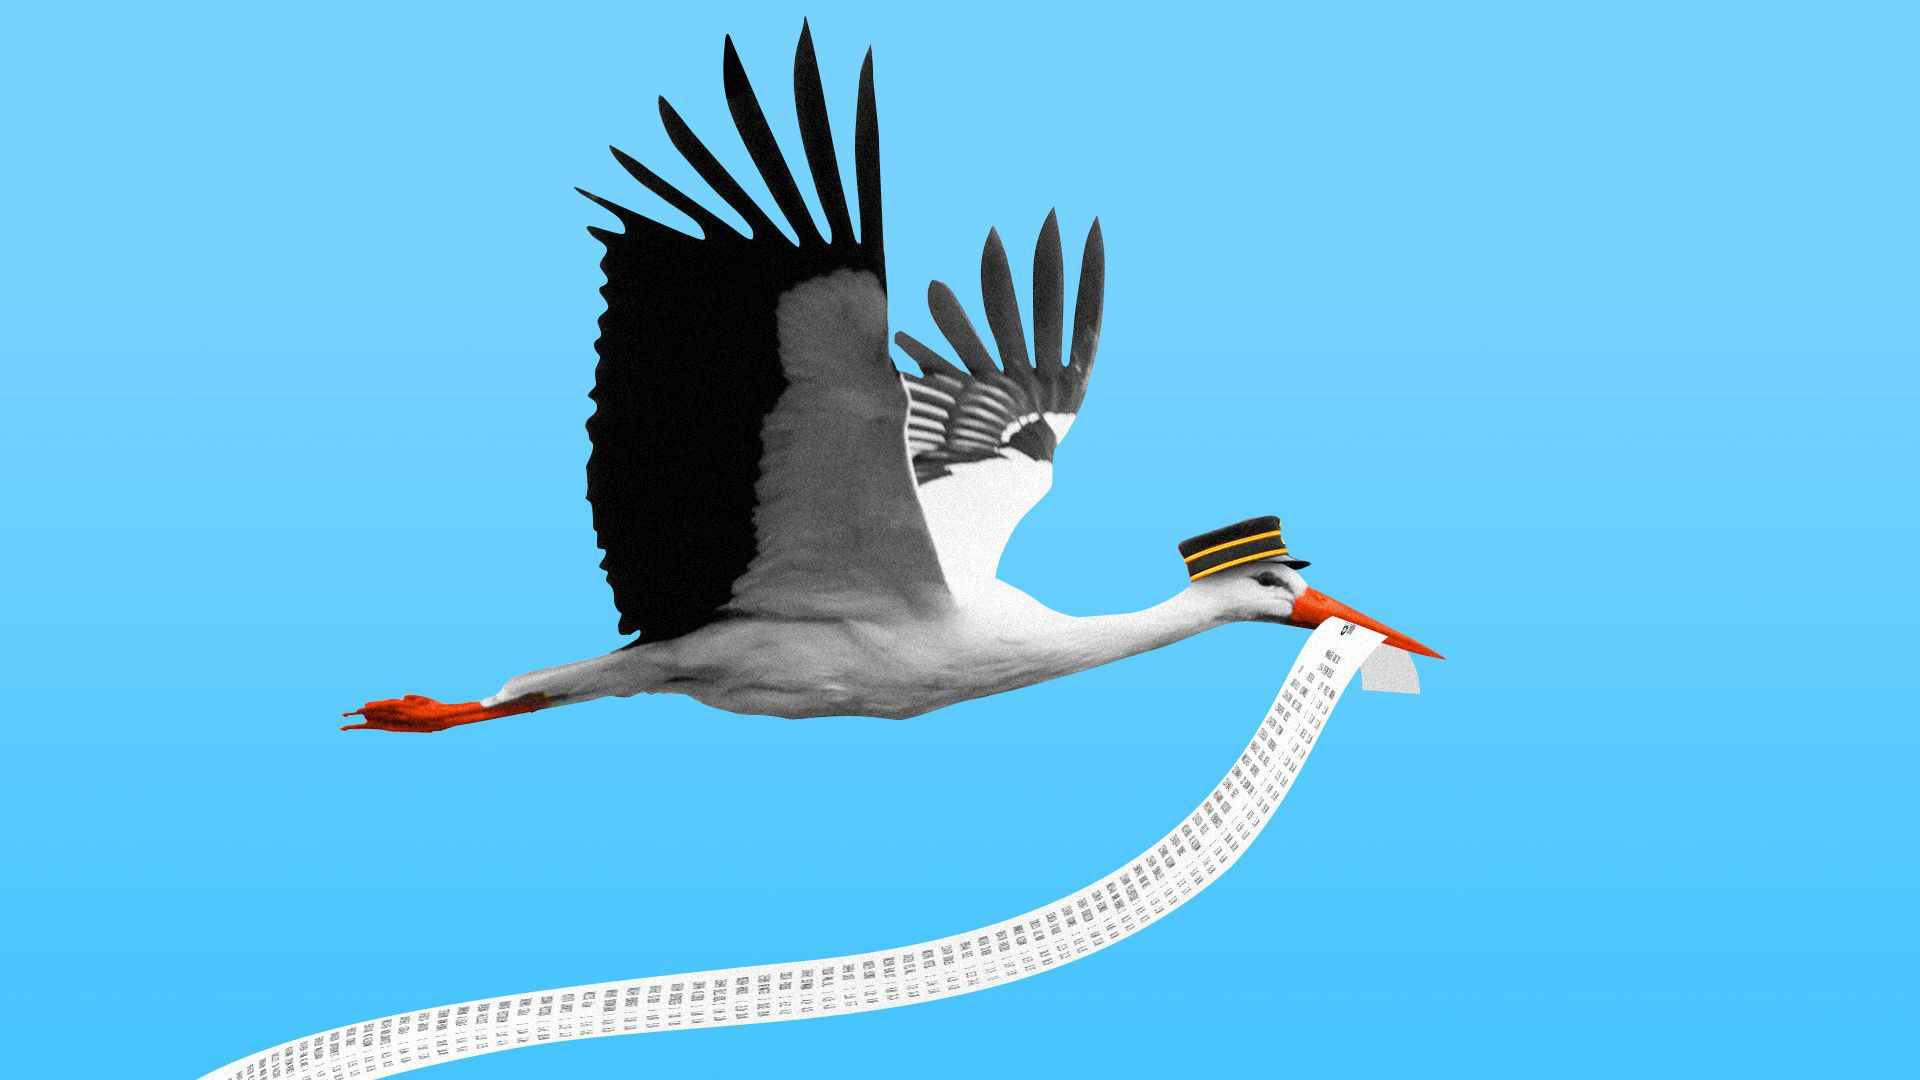 Illustration of a stork holding a very long receipt.